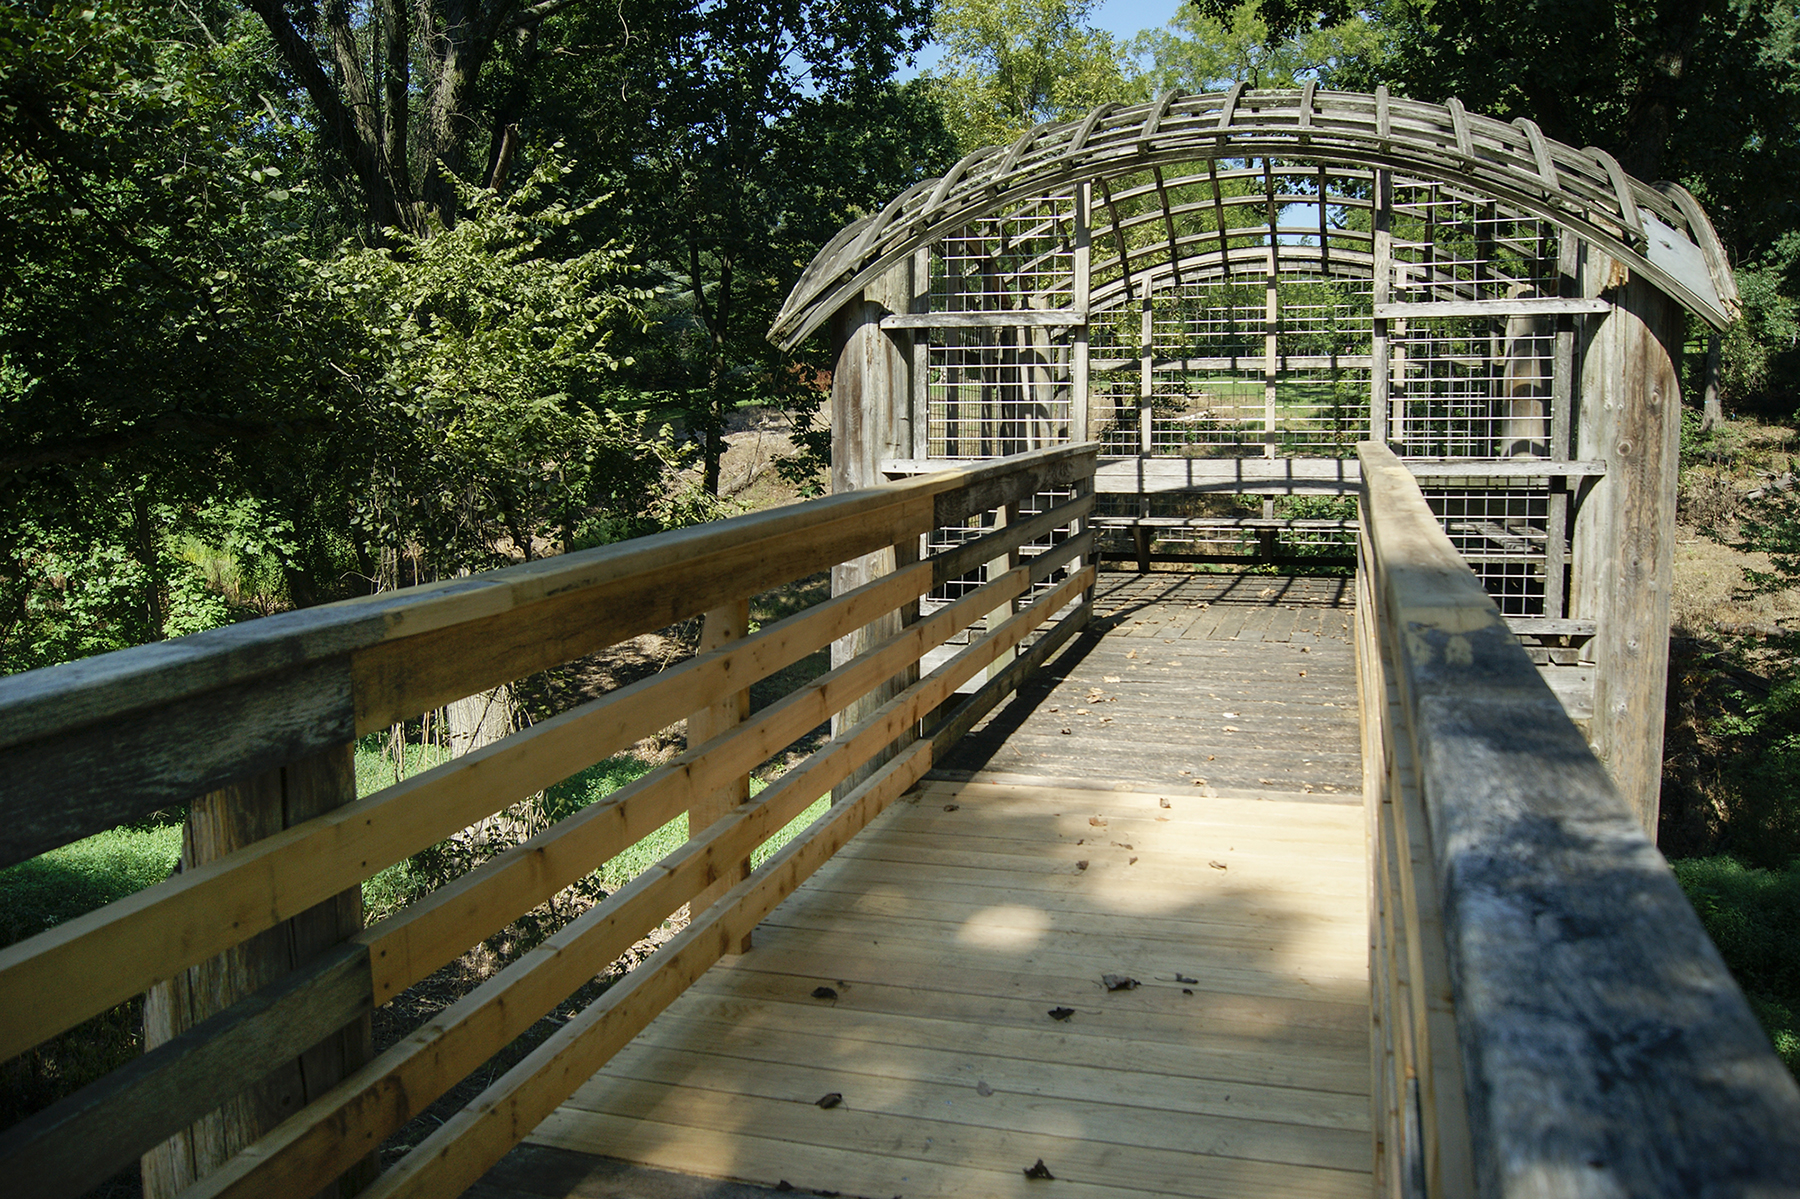 The replaced walkway of Pavilion